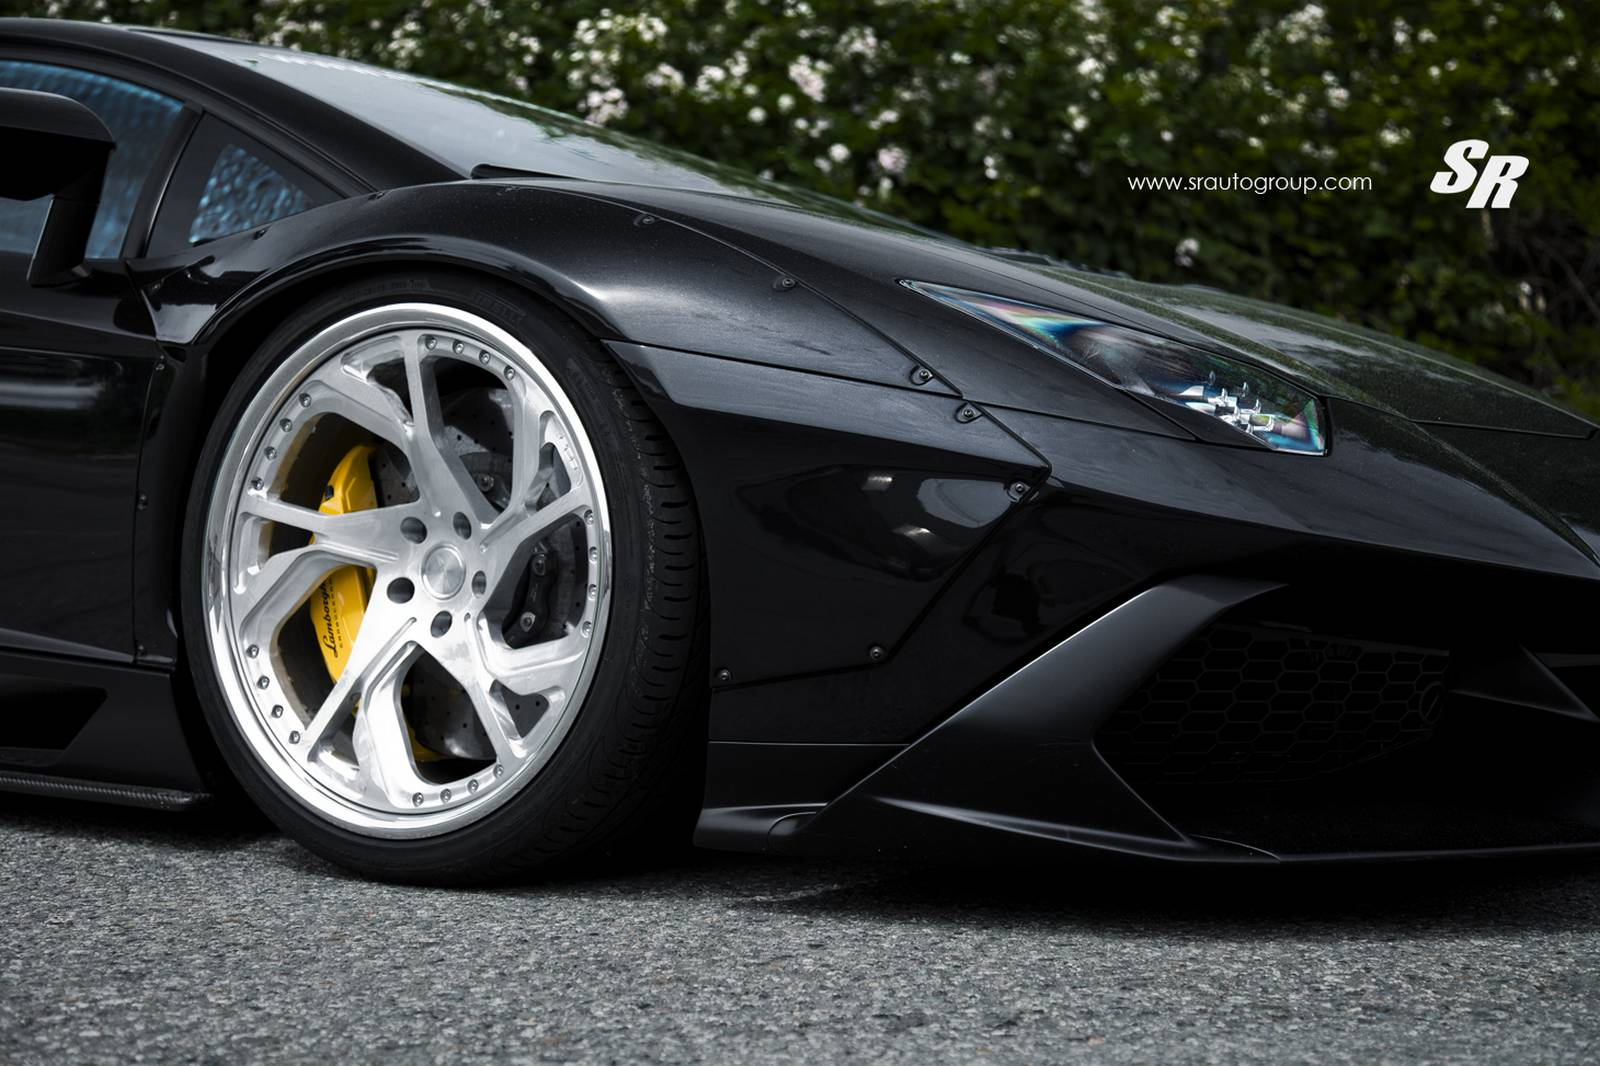 Lamborghini Aventador Rides On Pur Wheels, Customization